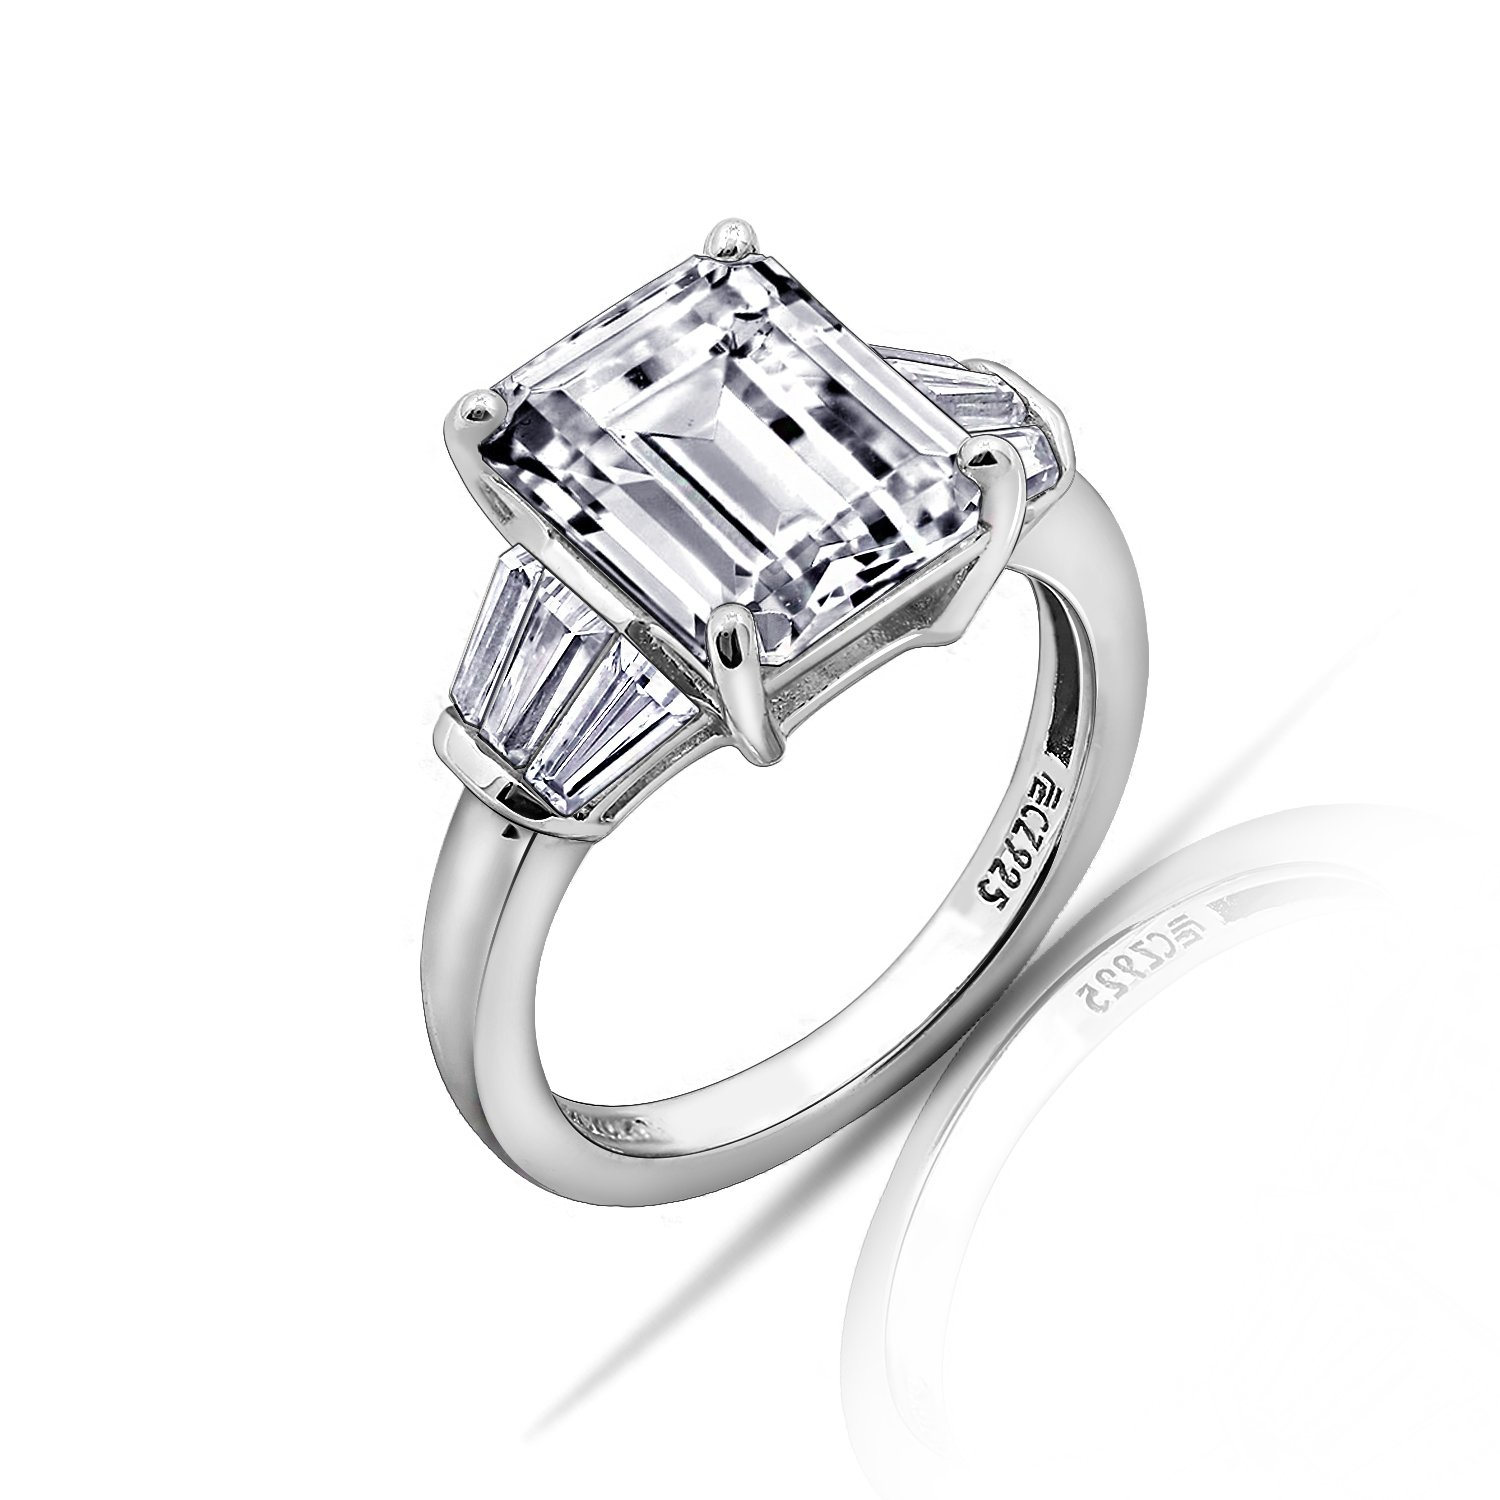 DIAMONBLISS Platinum Sterling Silver Cubic Zirconia Emerald Cut Ring, Size 8